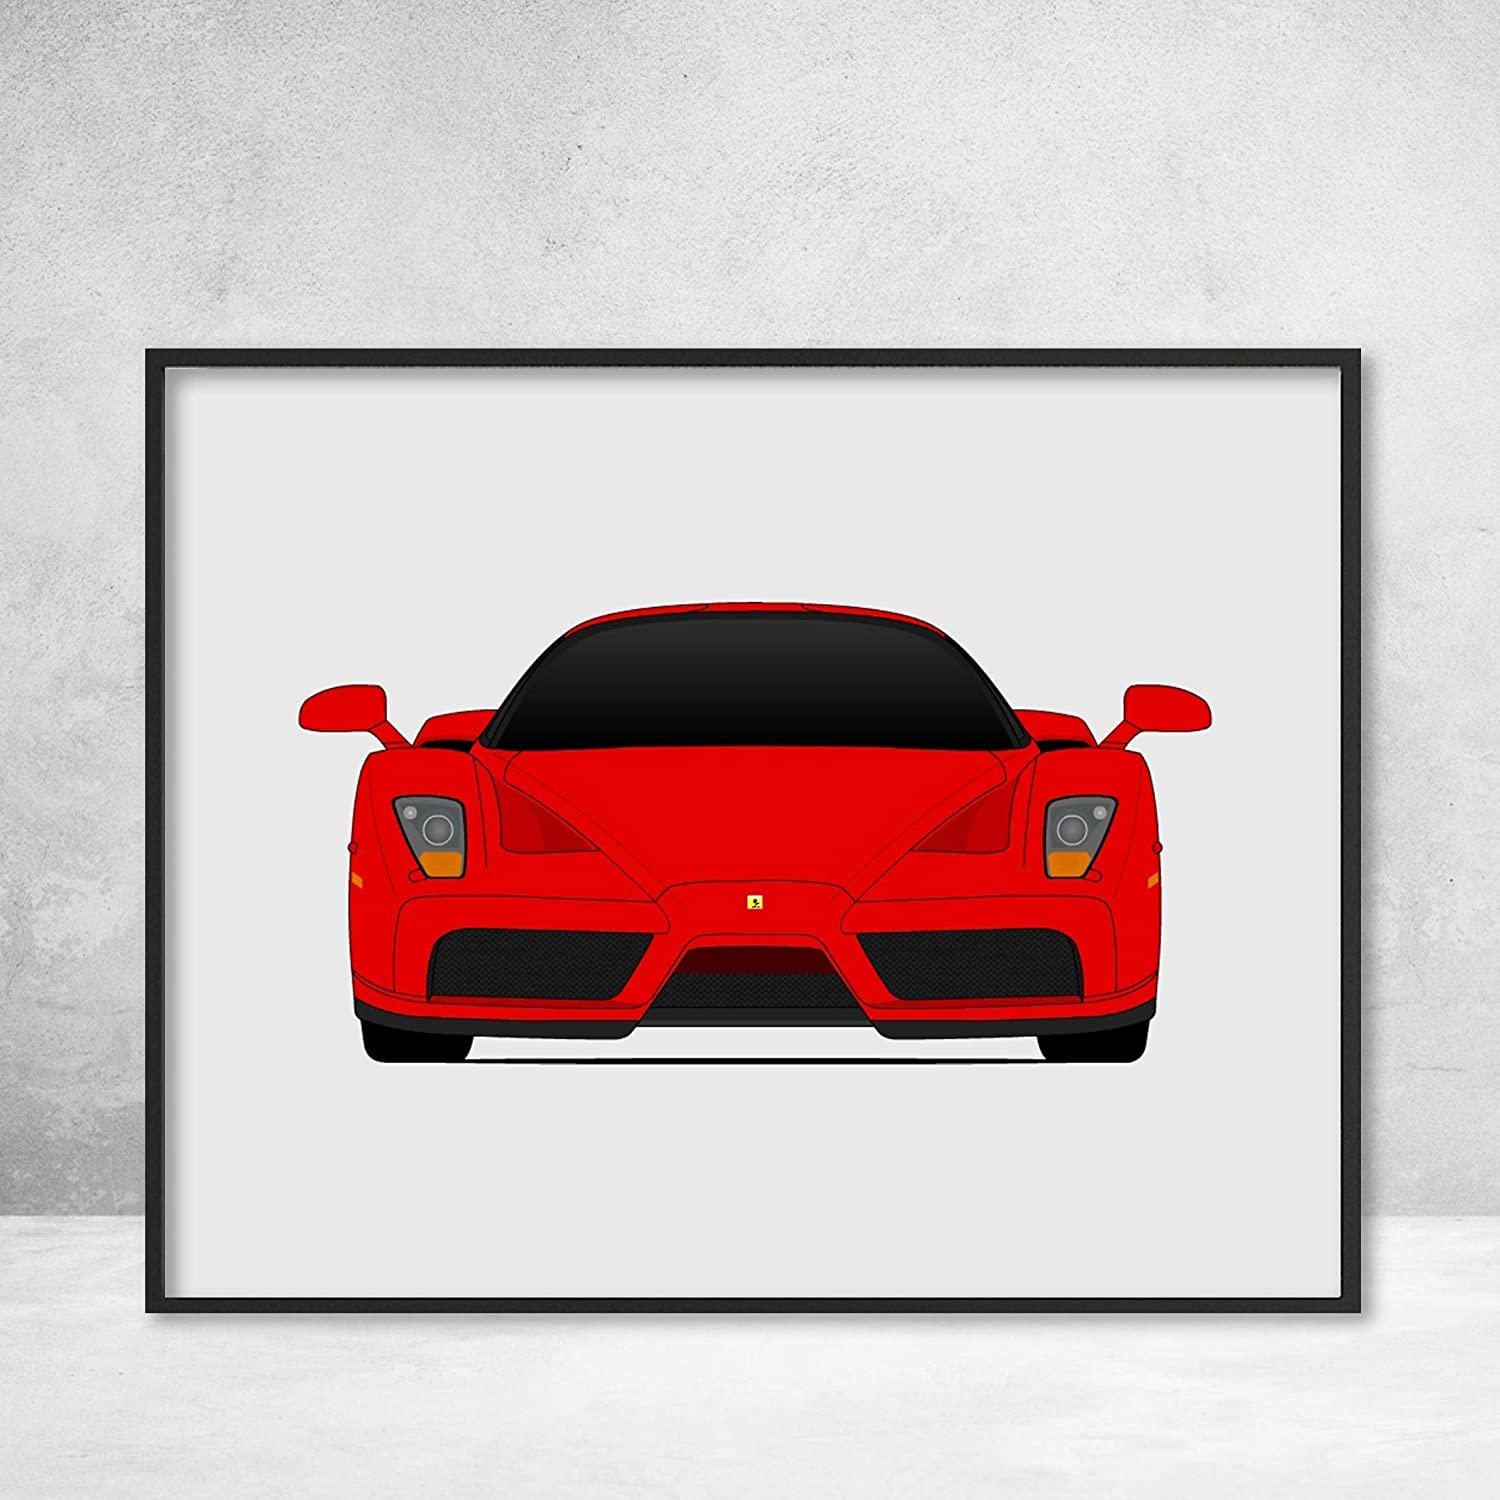 decor and design ferrari decor and design Amazon.com: Ferrari Enzo Supercar Poster Print Wall Art Decor Handmade:  Handmade